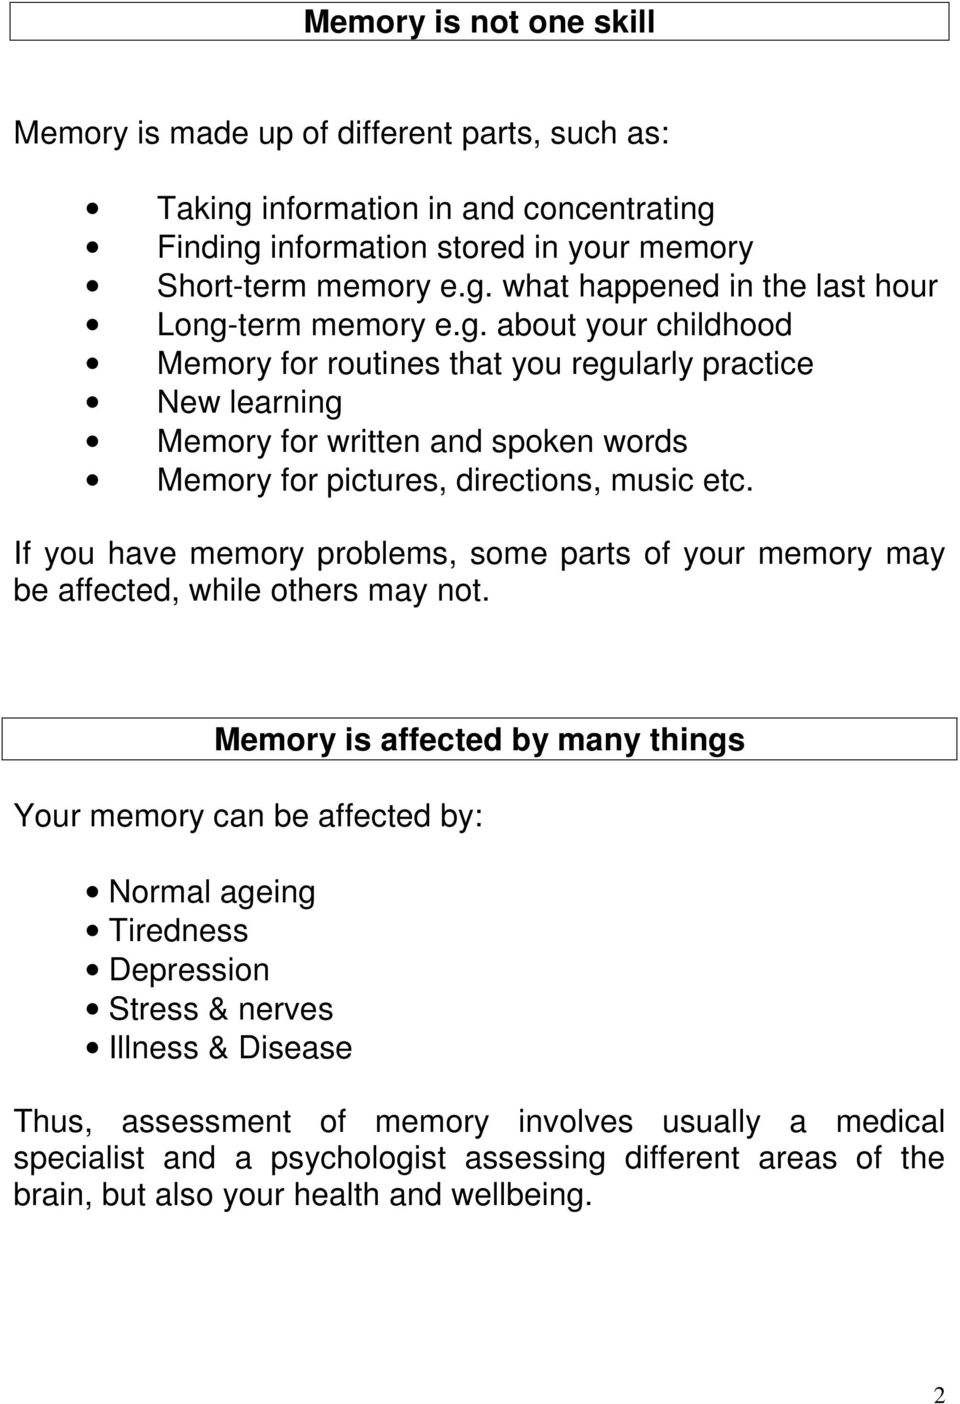 If you have memory problems, some parts of your memory may be affected, while others may not.